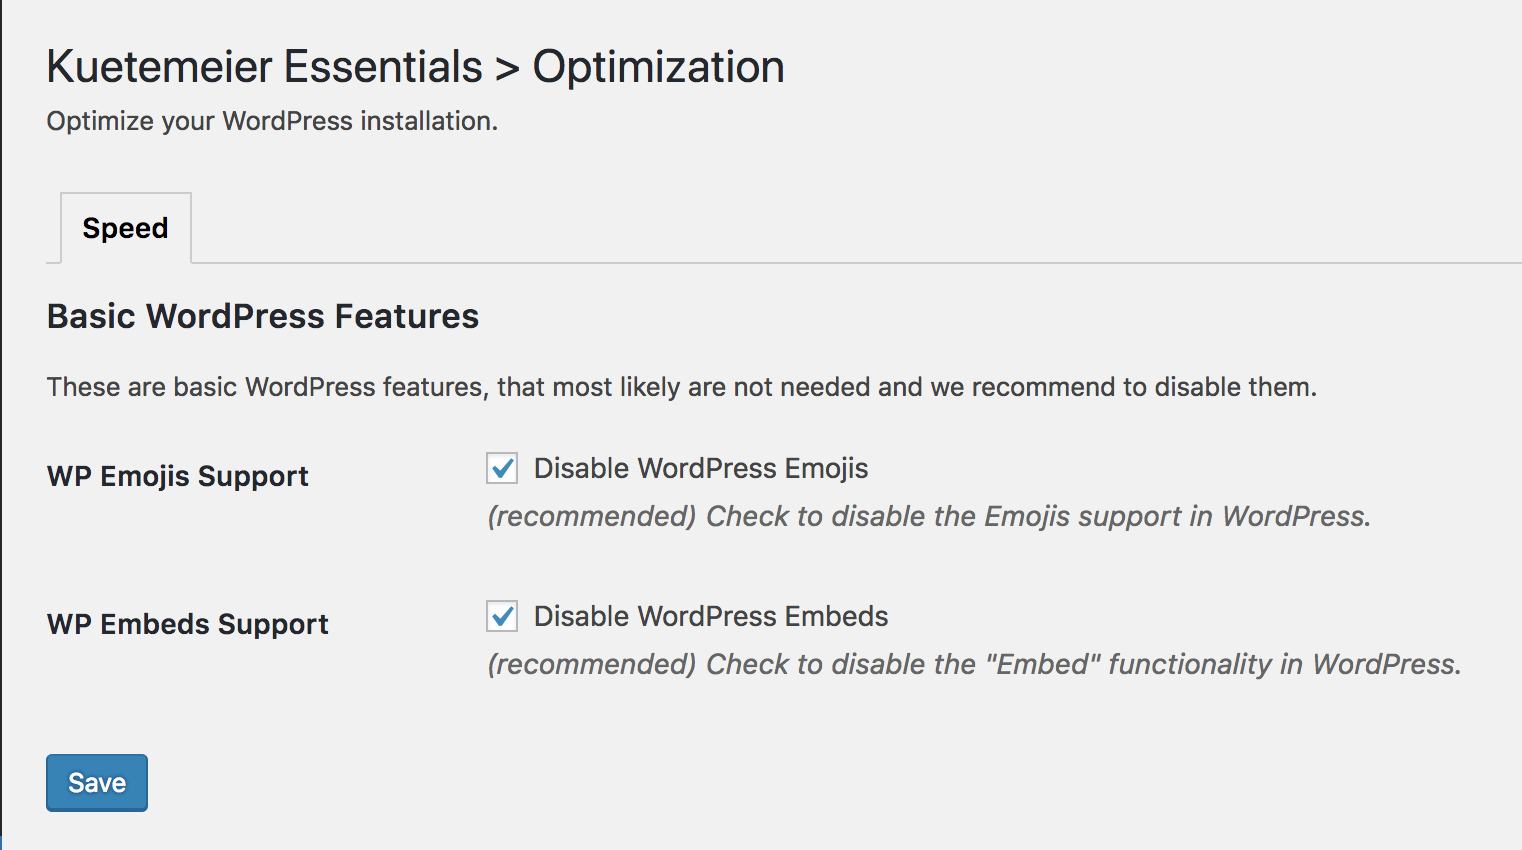 Optimize your WordPress installation, remove Emojis and Embeds